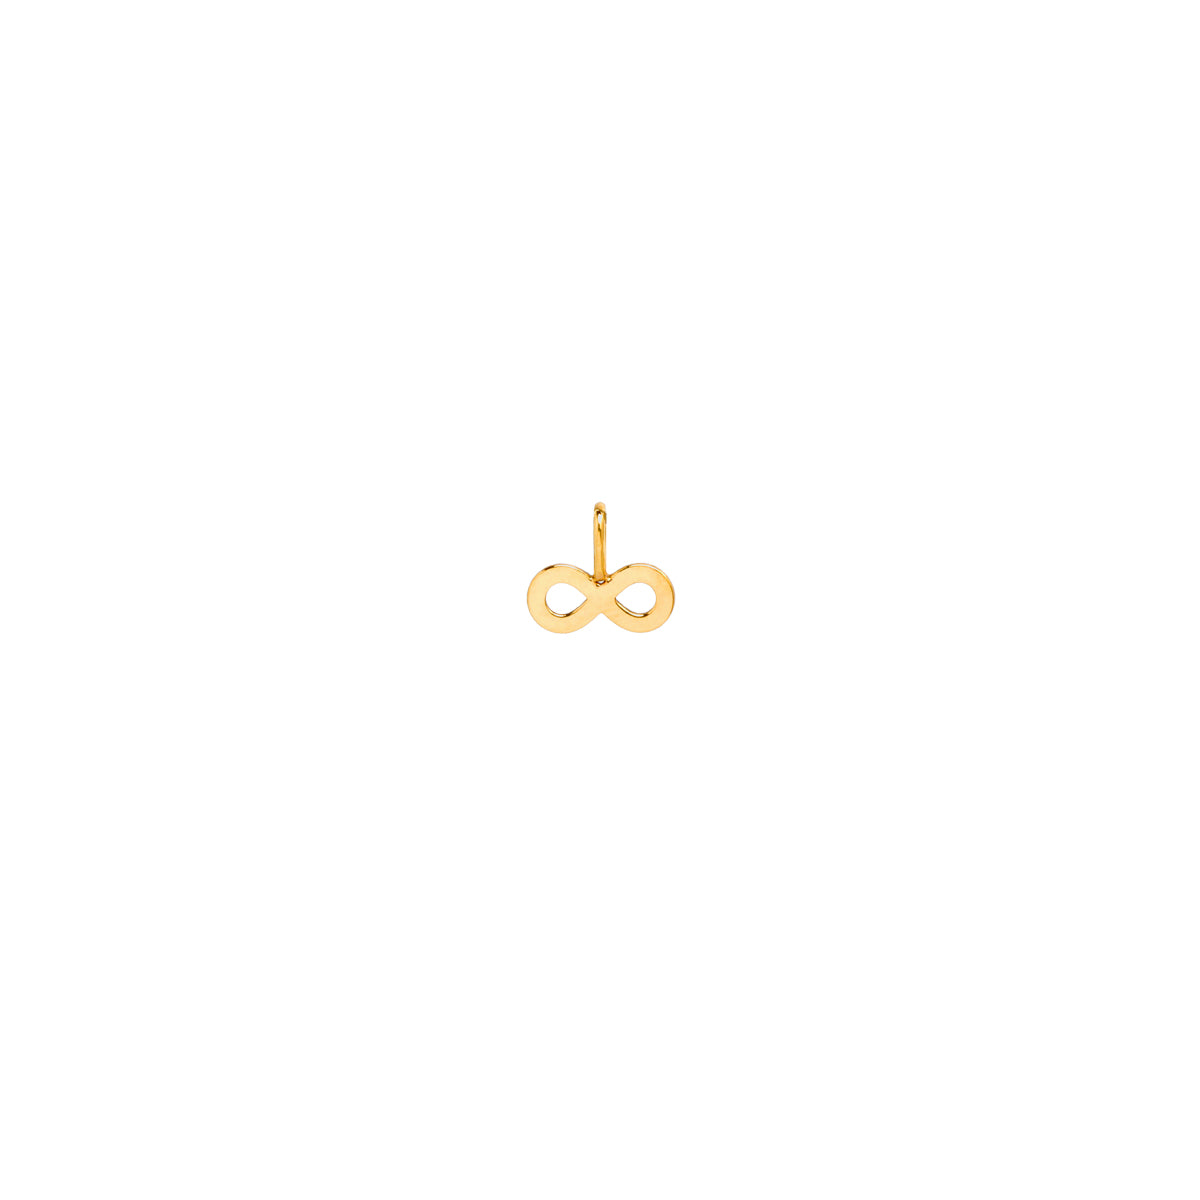 14k single midi bitty infinity charm